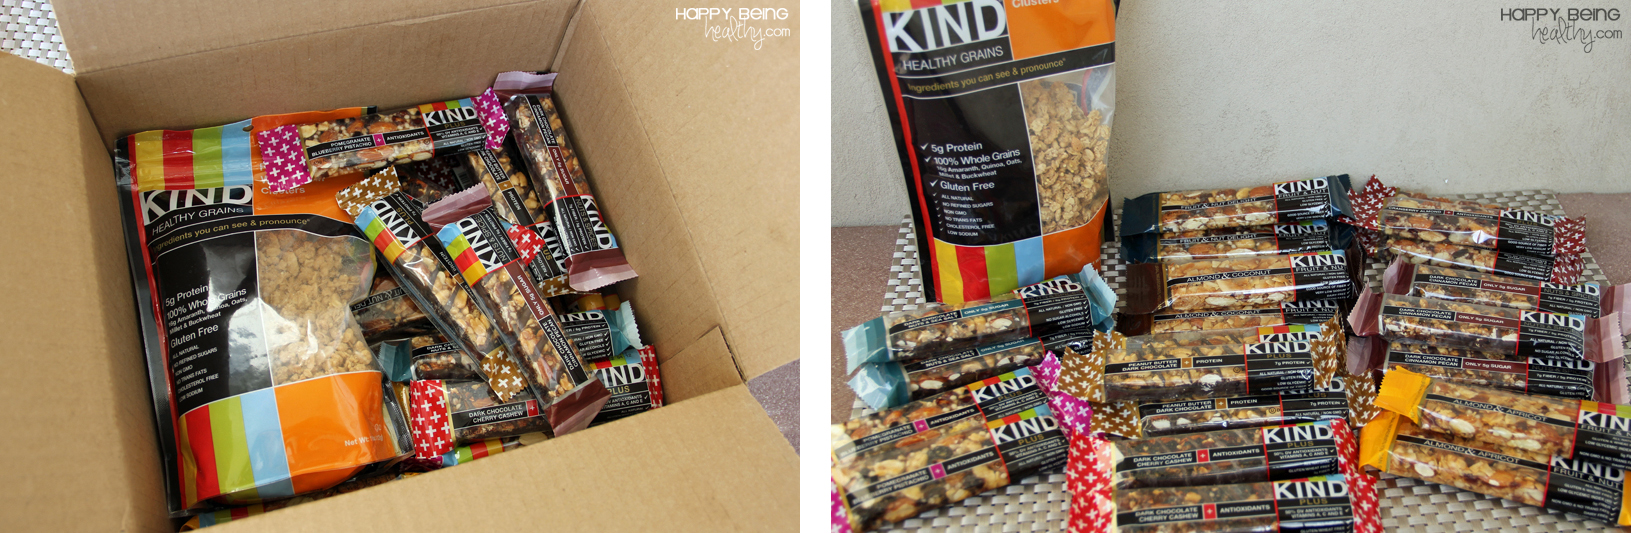 Package full of KIND bars and granola